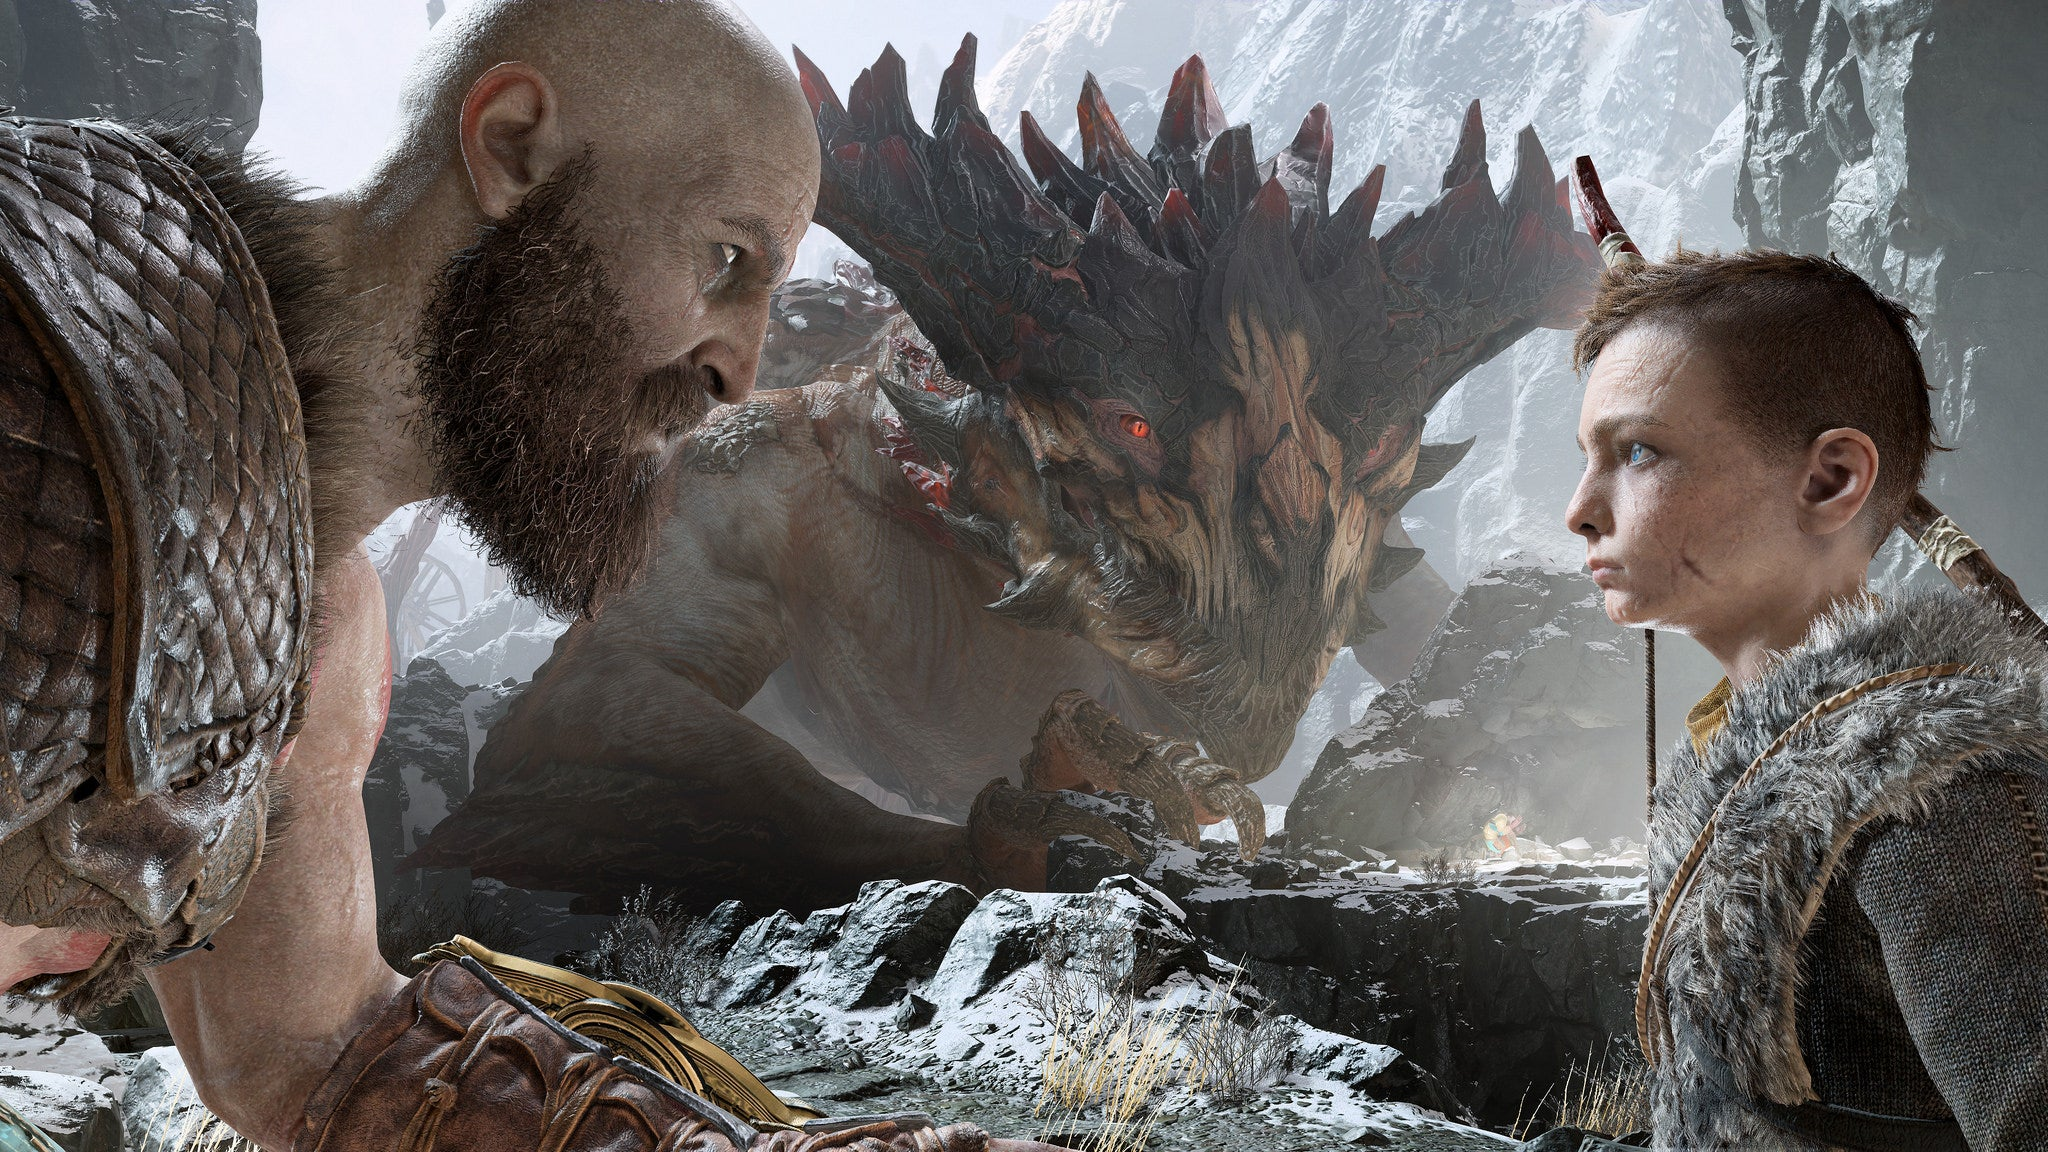 The God Of War We've Already Been Playing In Our Heads